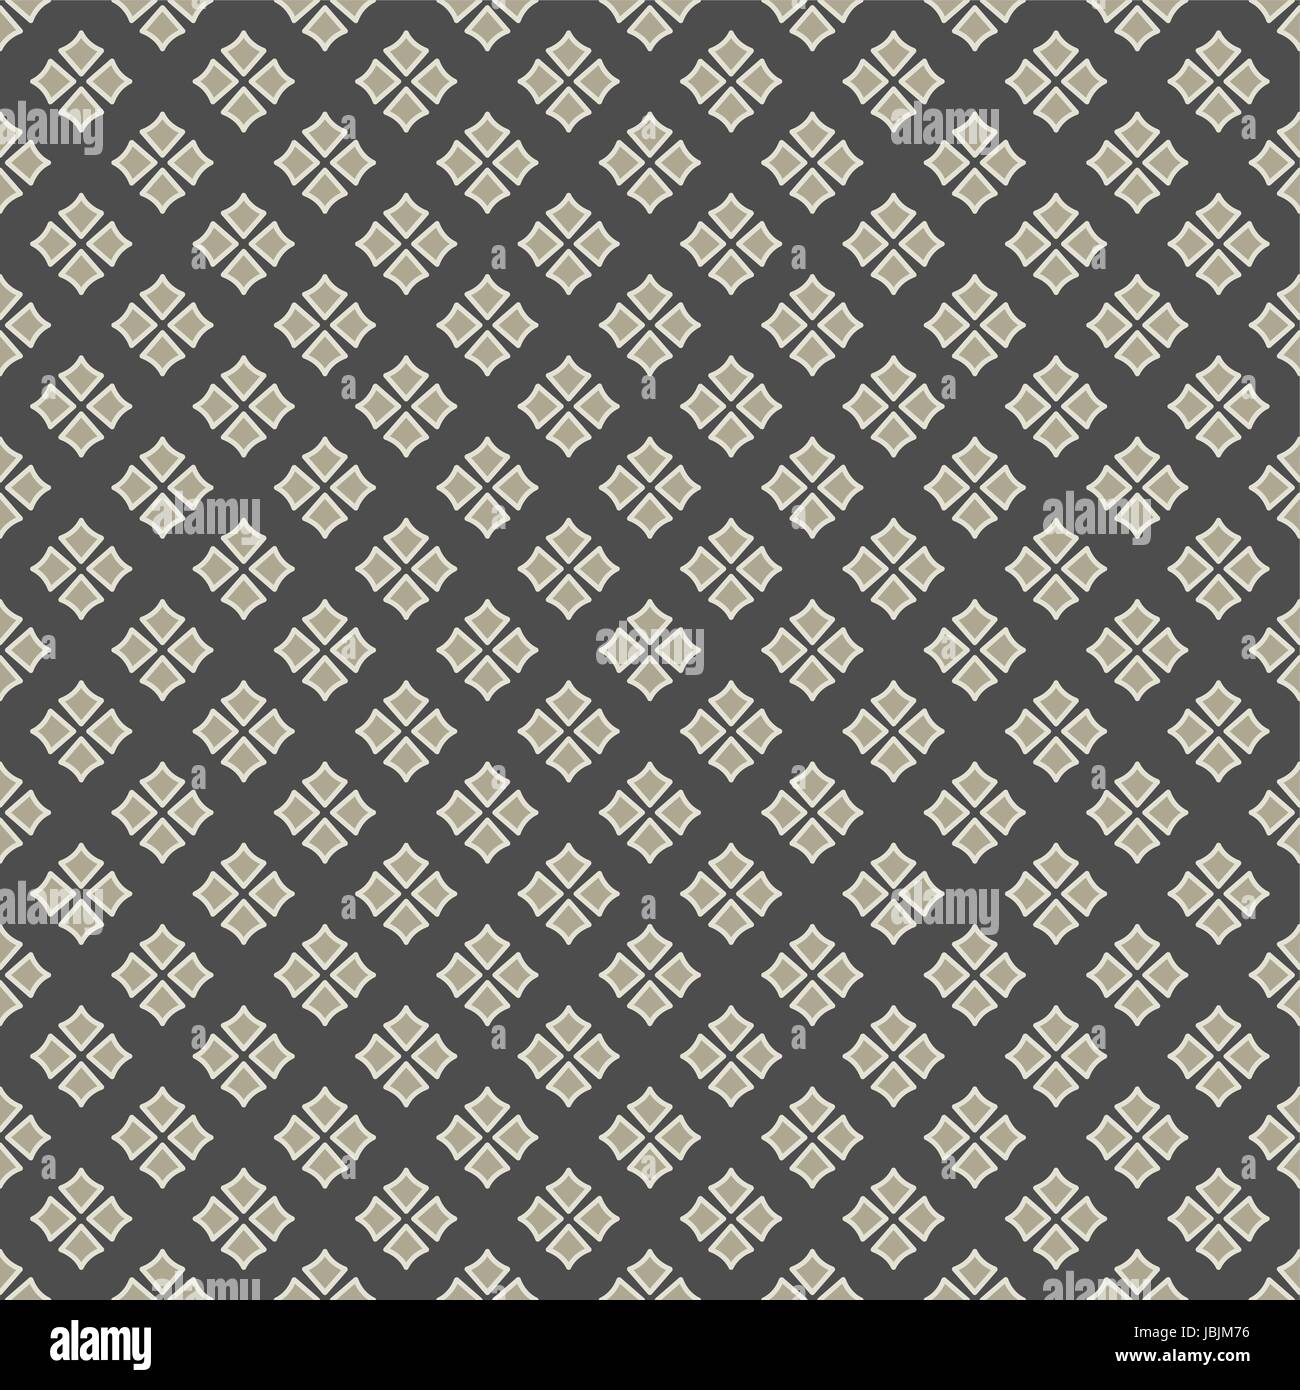 Vector seamless pattern. Luxury elegant texture. Pattern can be used as a background, wallpaper, wrapper, page fill, - Stock Image